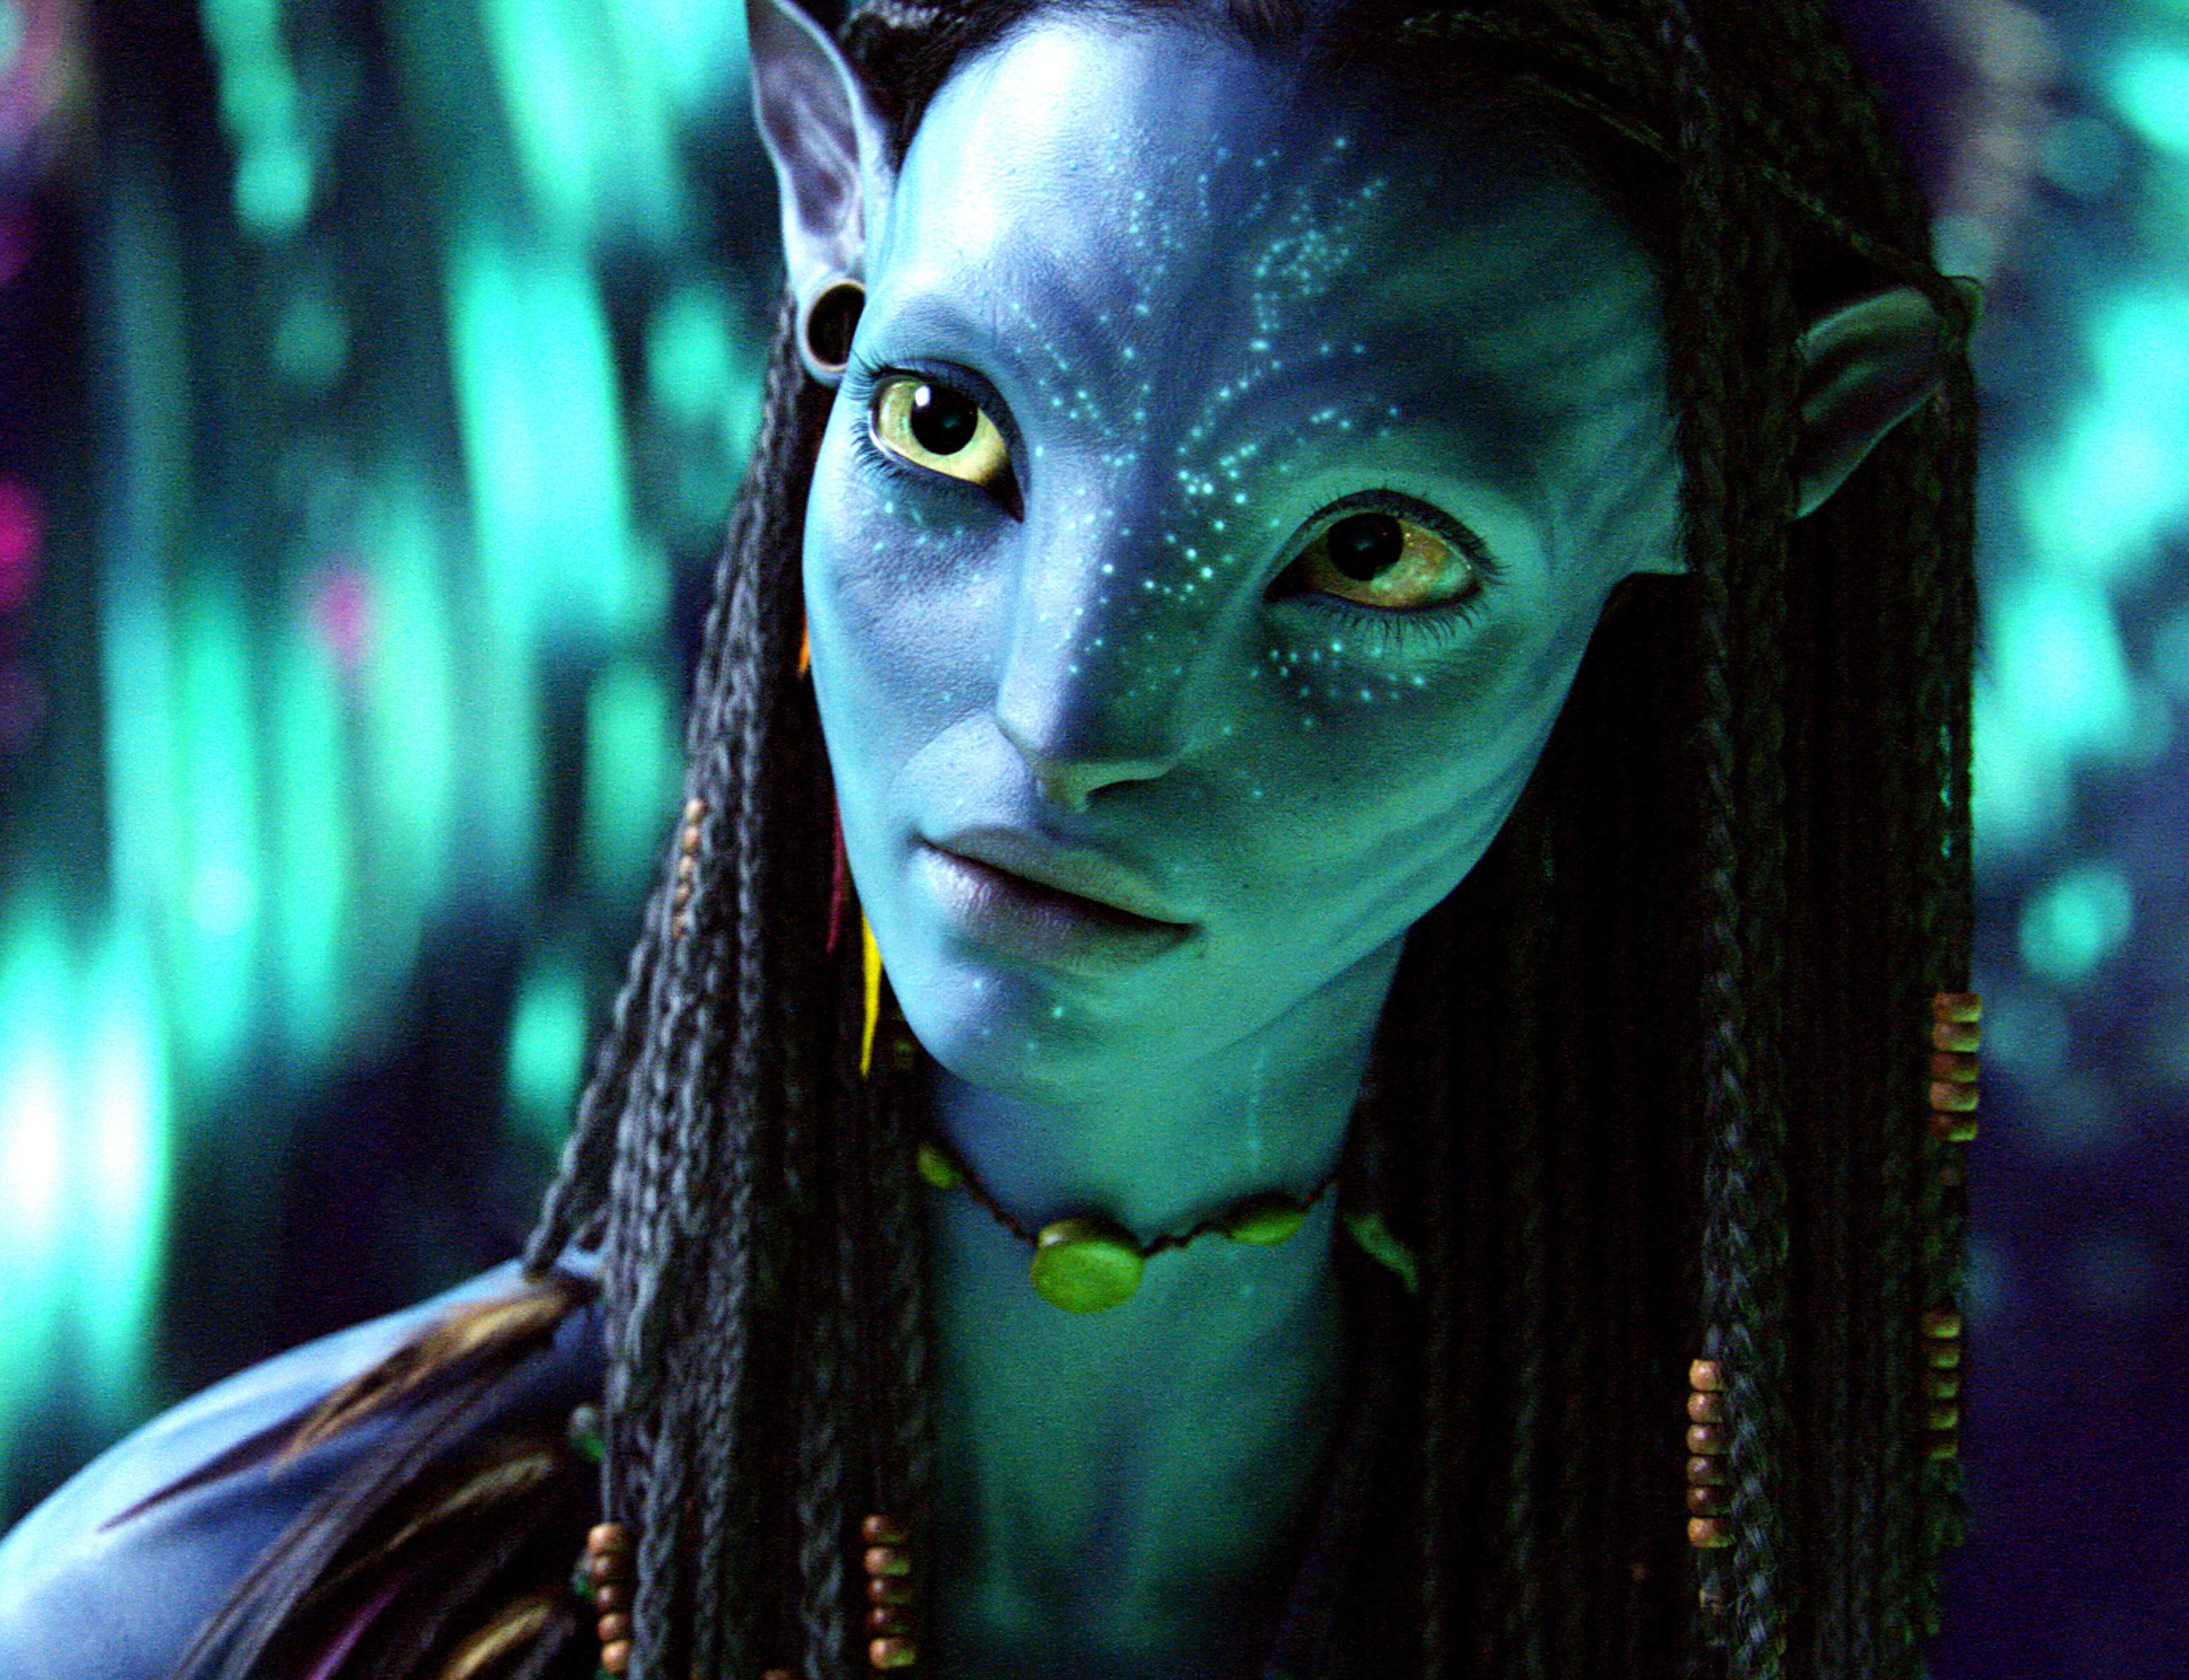 James Cameron's 'Avatar' - Page 11 - Cosplay.com